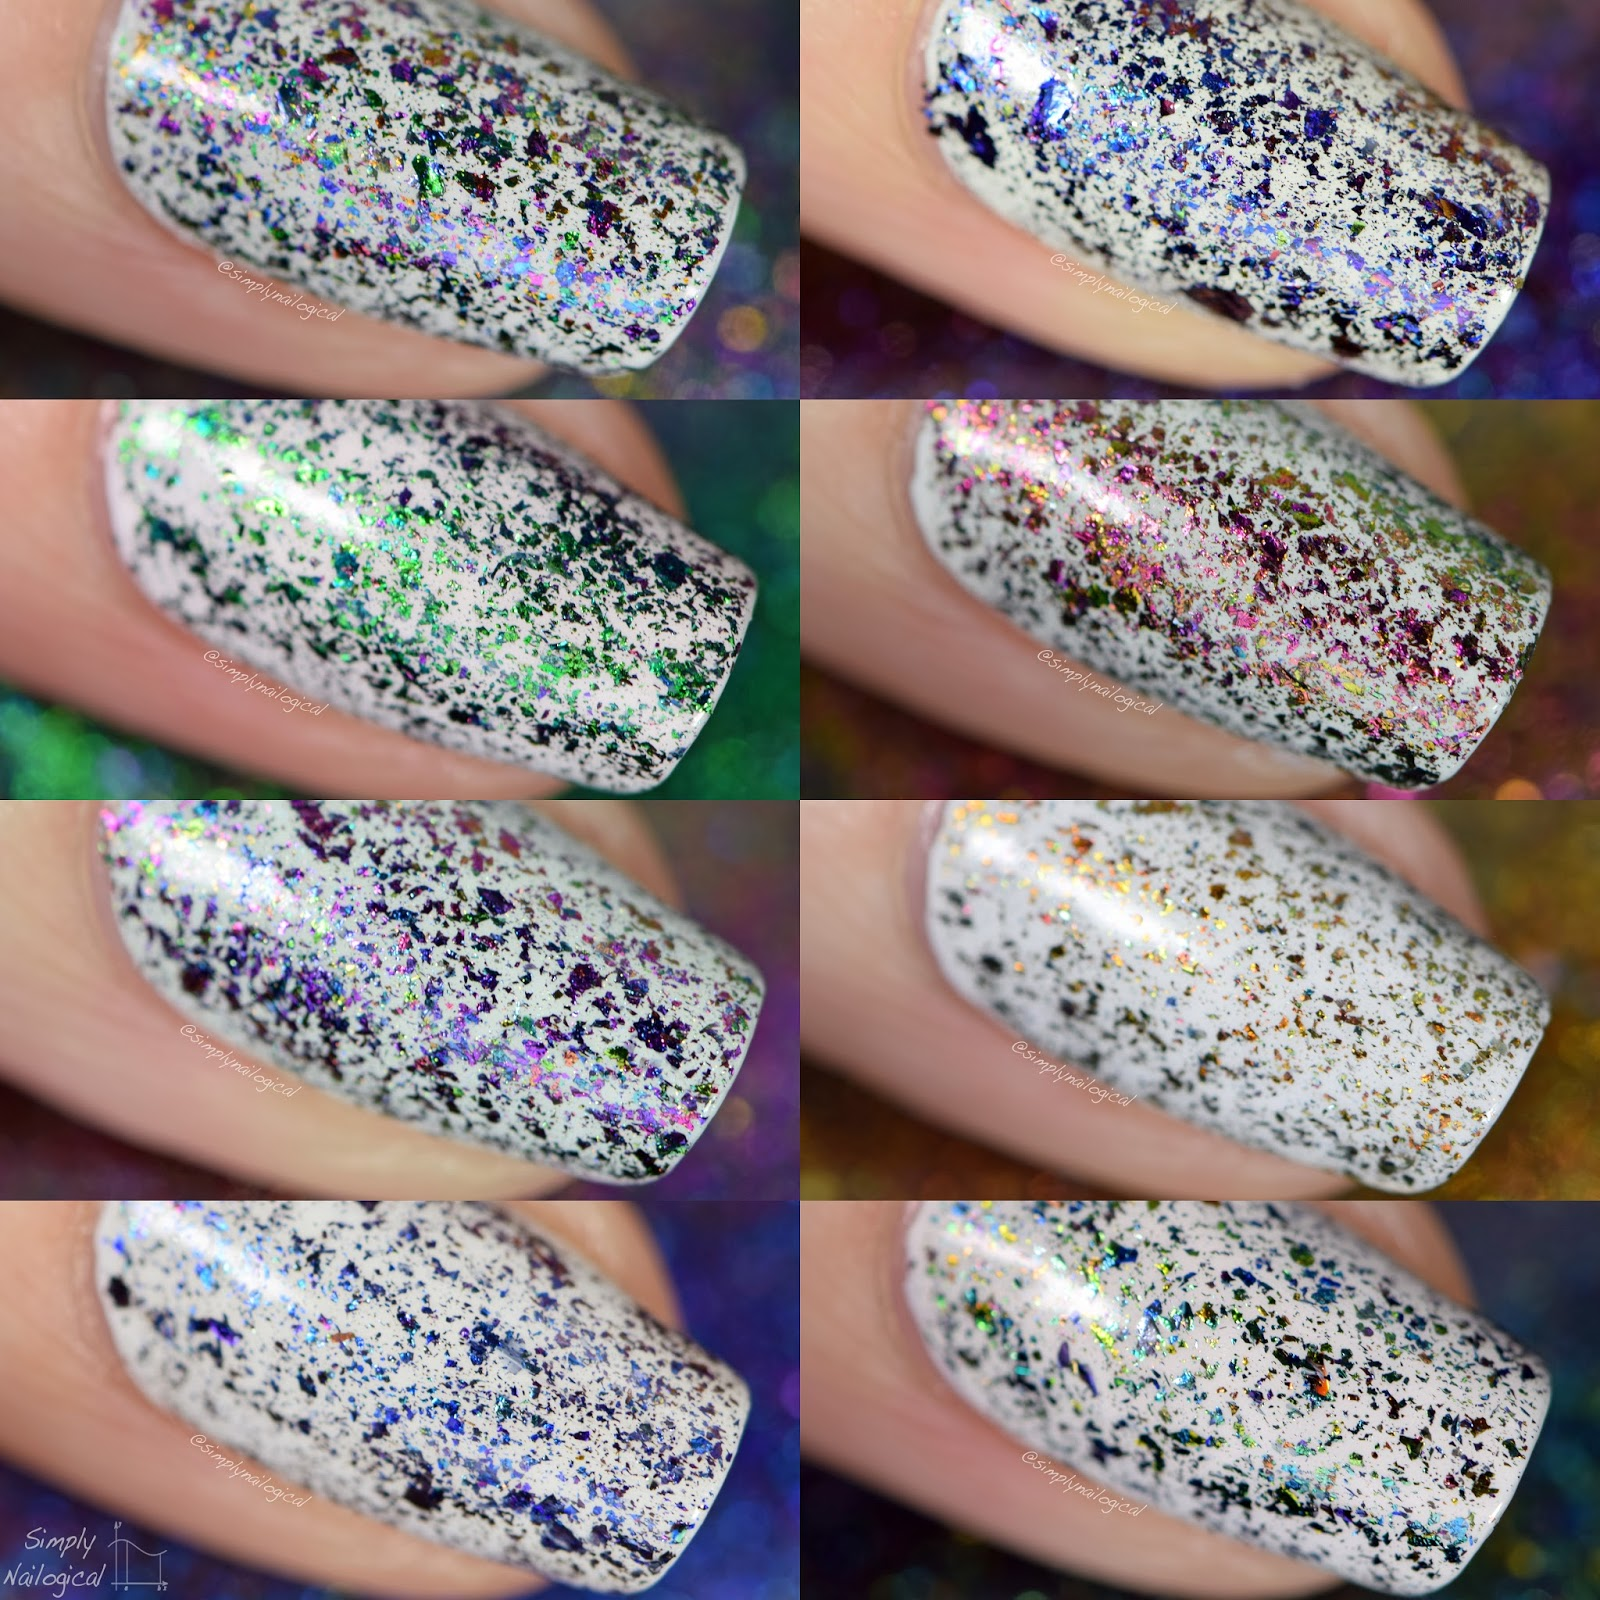 Starrily - Mythology flakies swatches